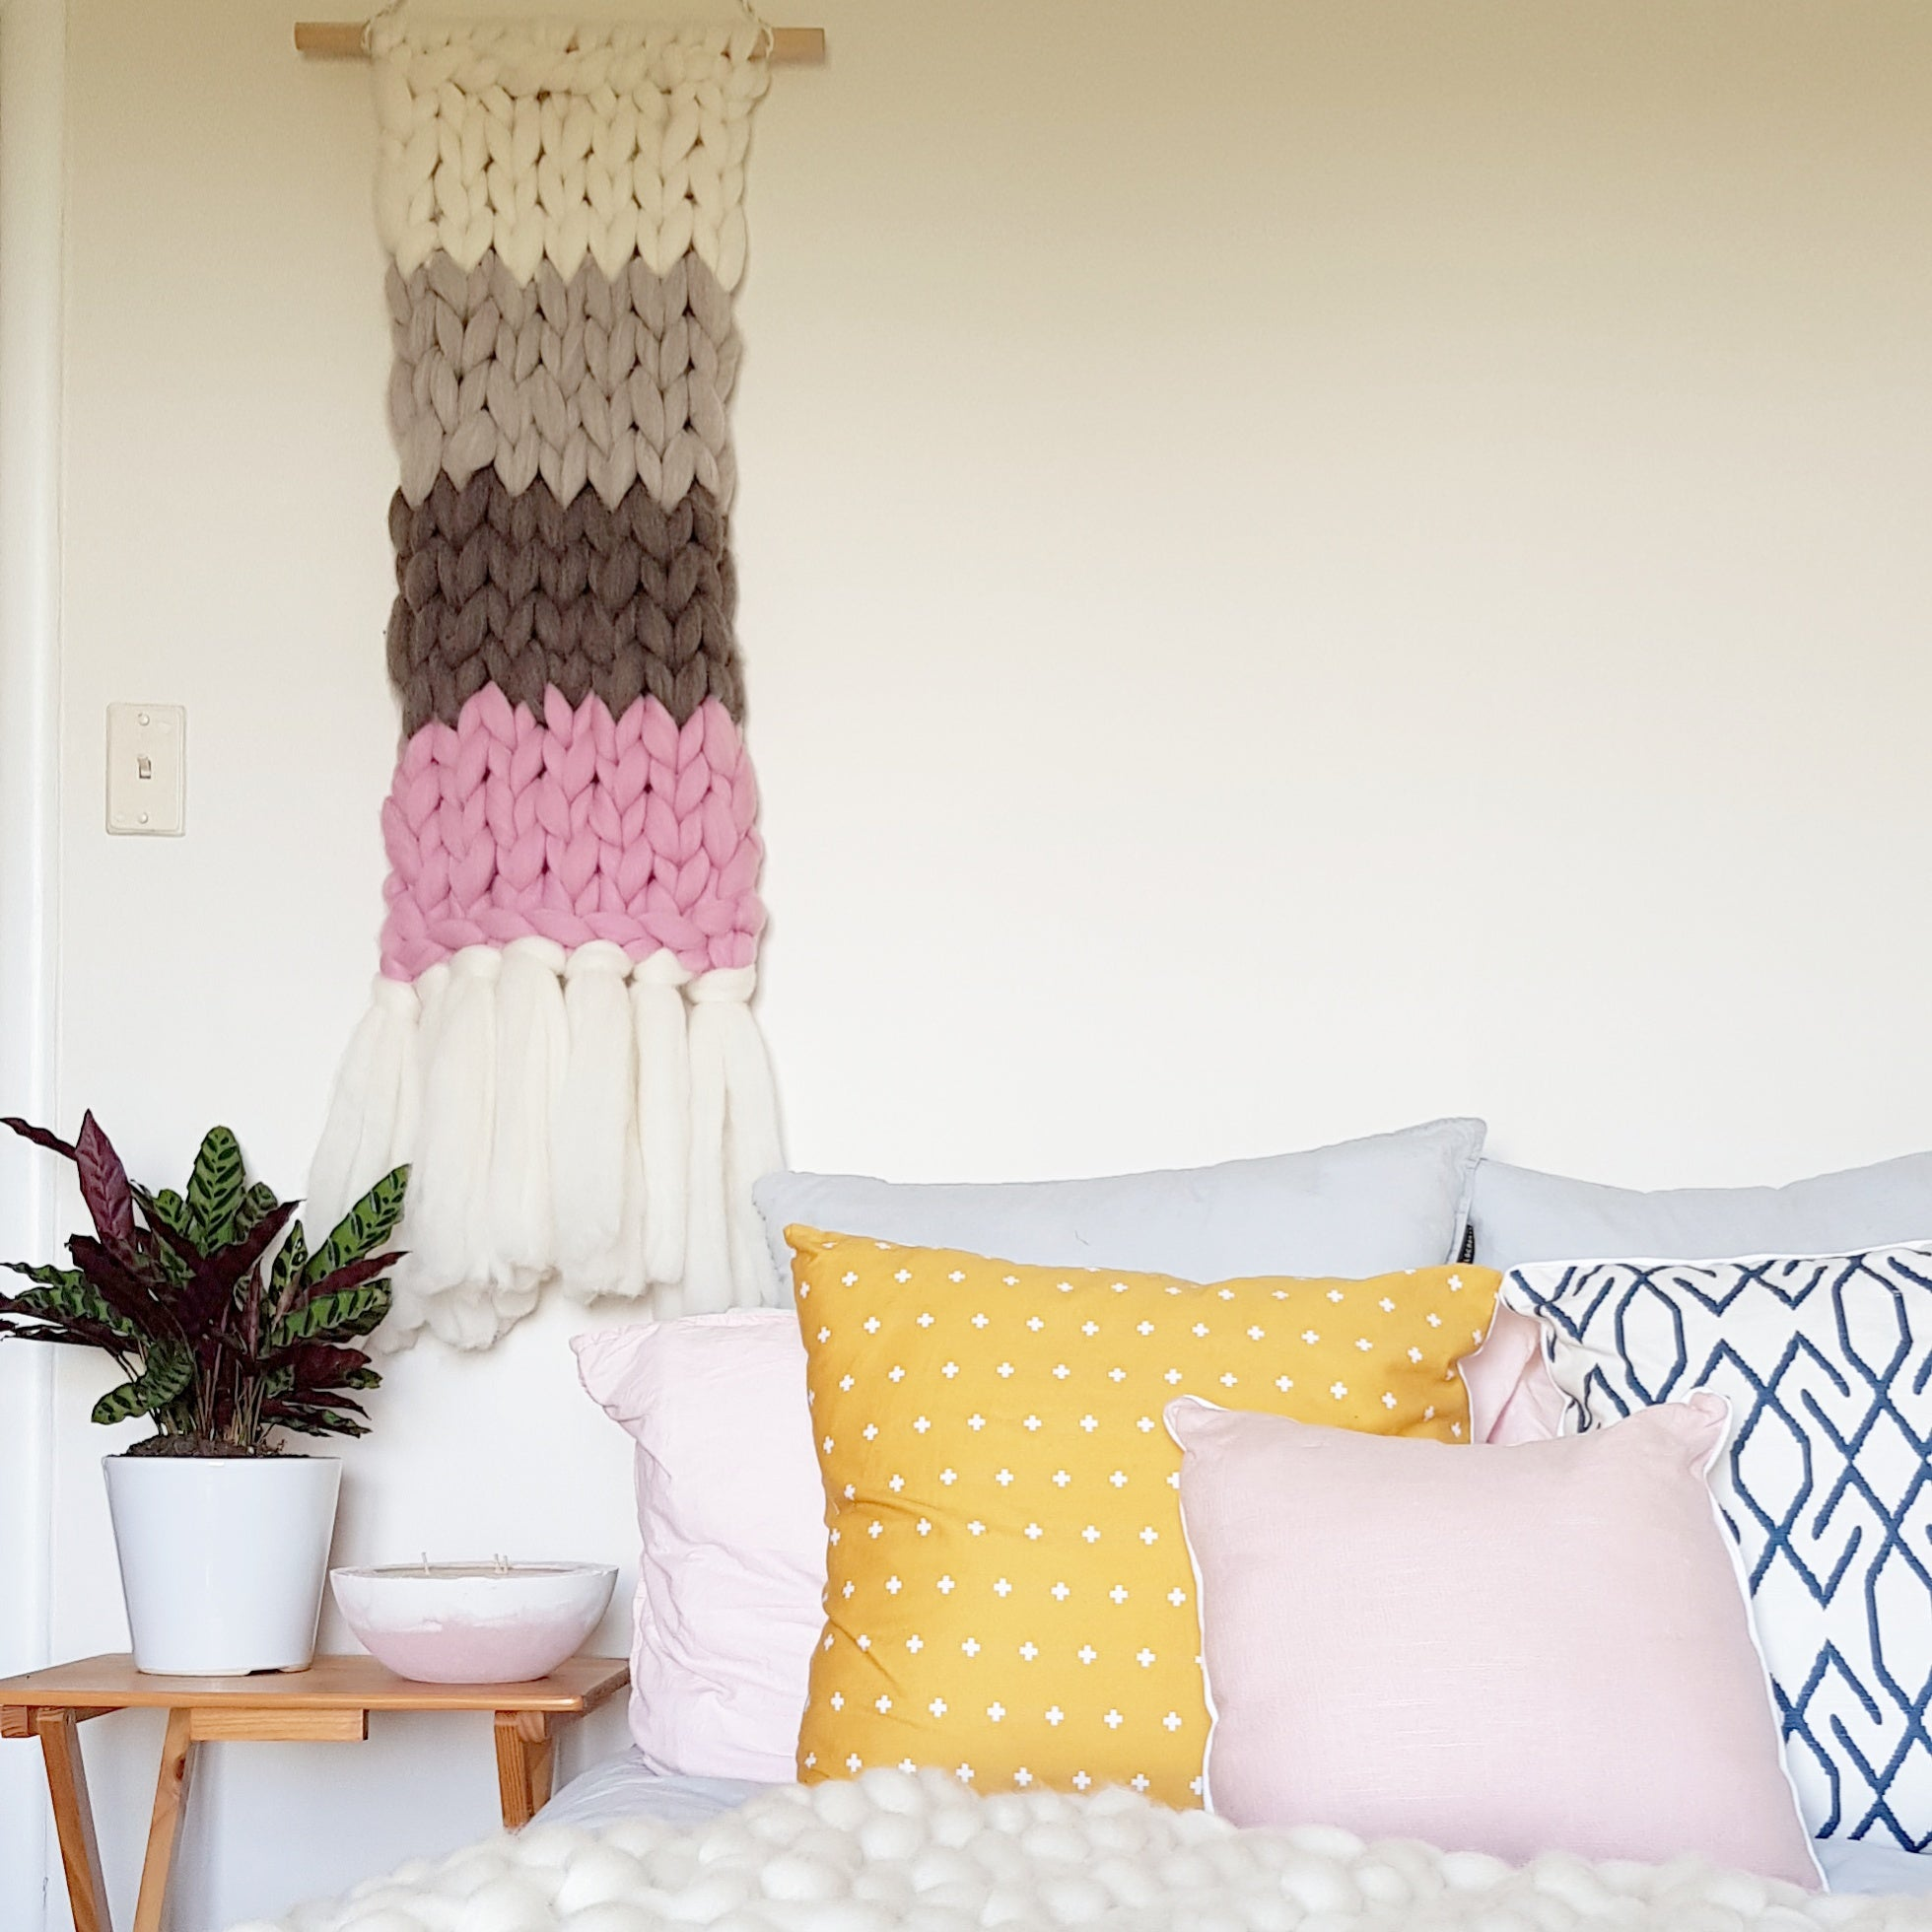 WALL HANGING | Pink & Neutrals